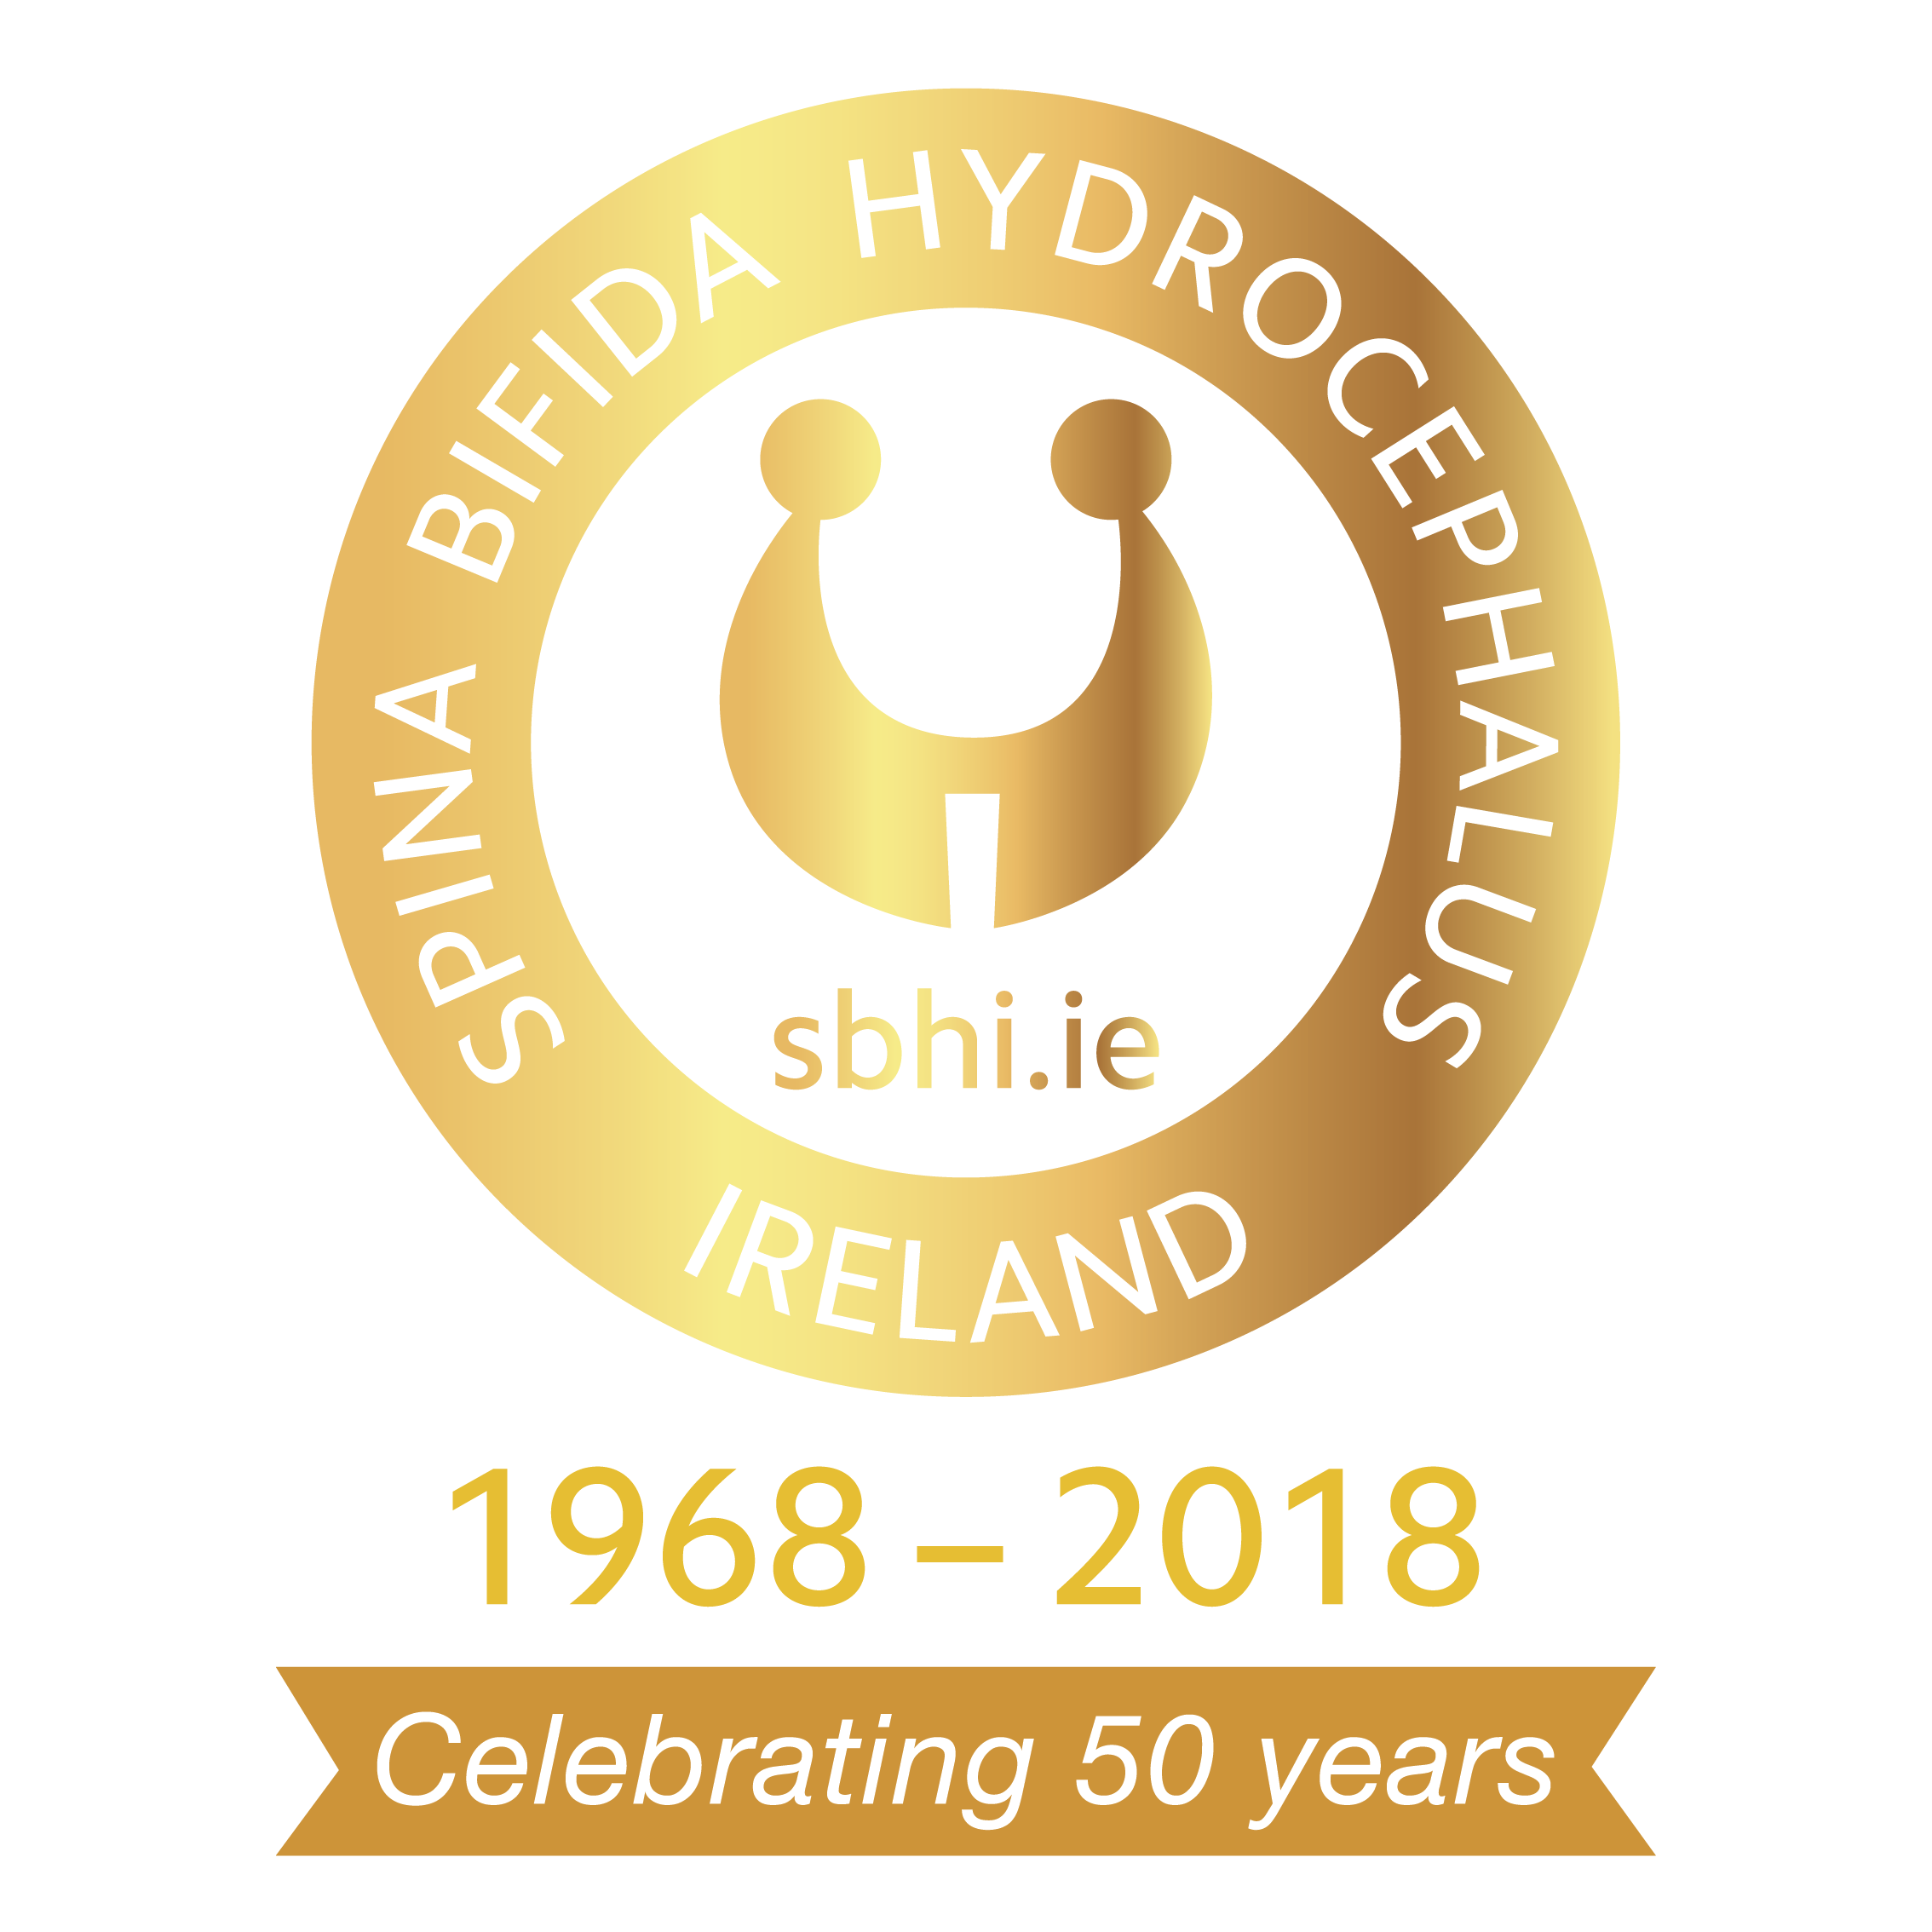 SBHI_New_50th_logo_1xxxhdpi.png